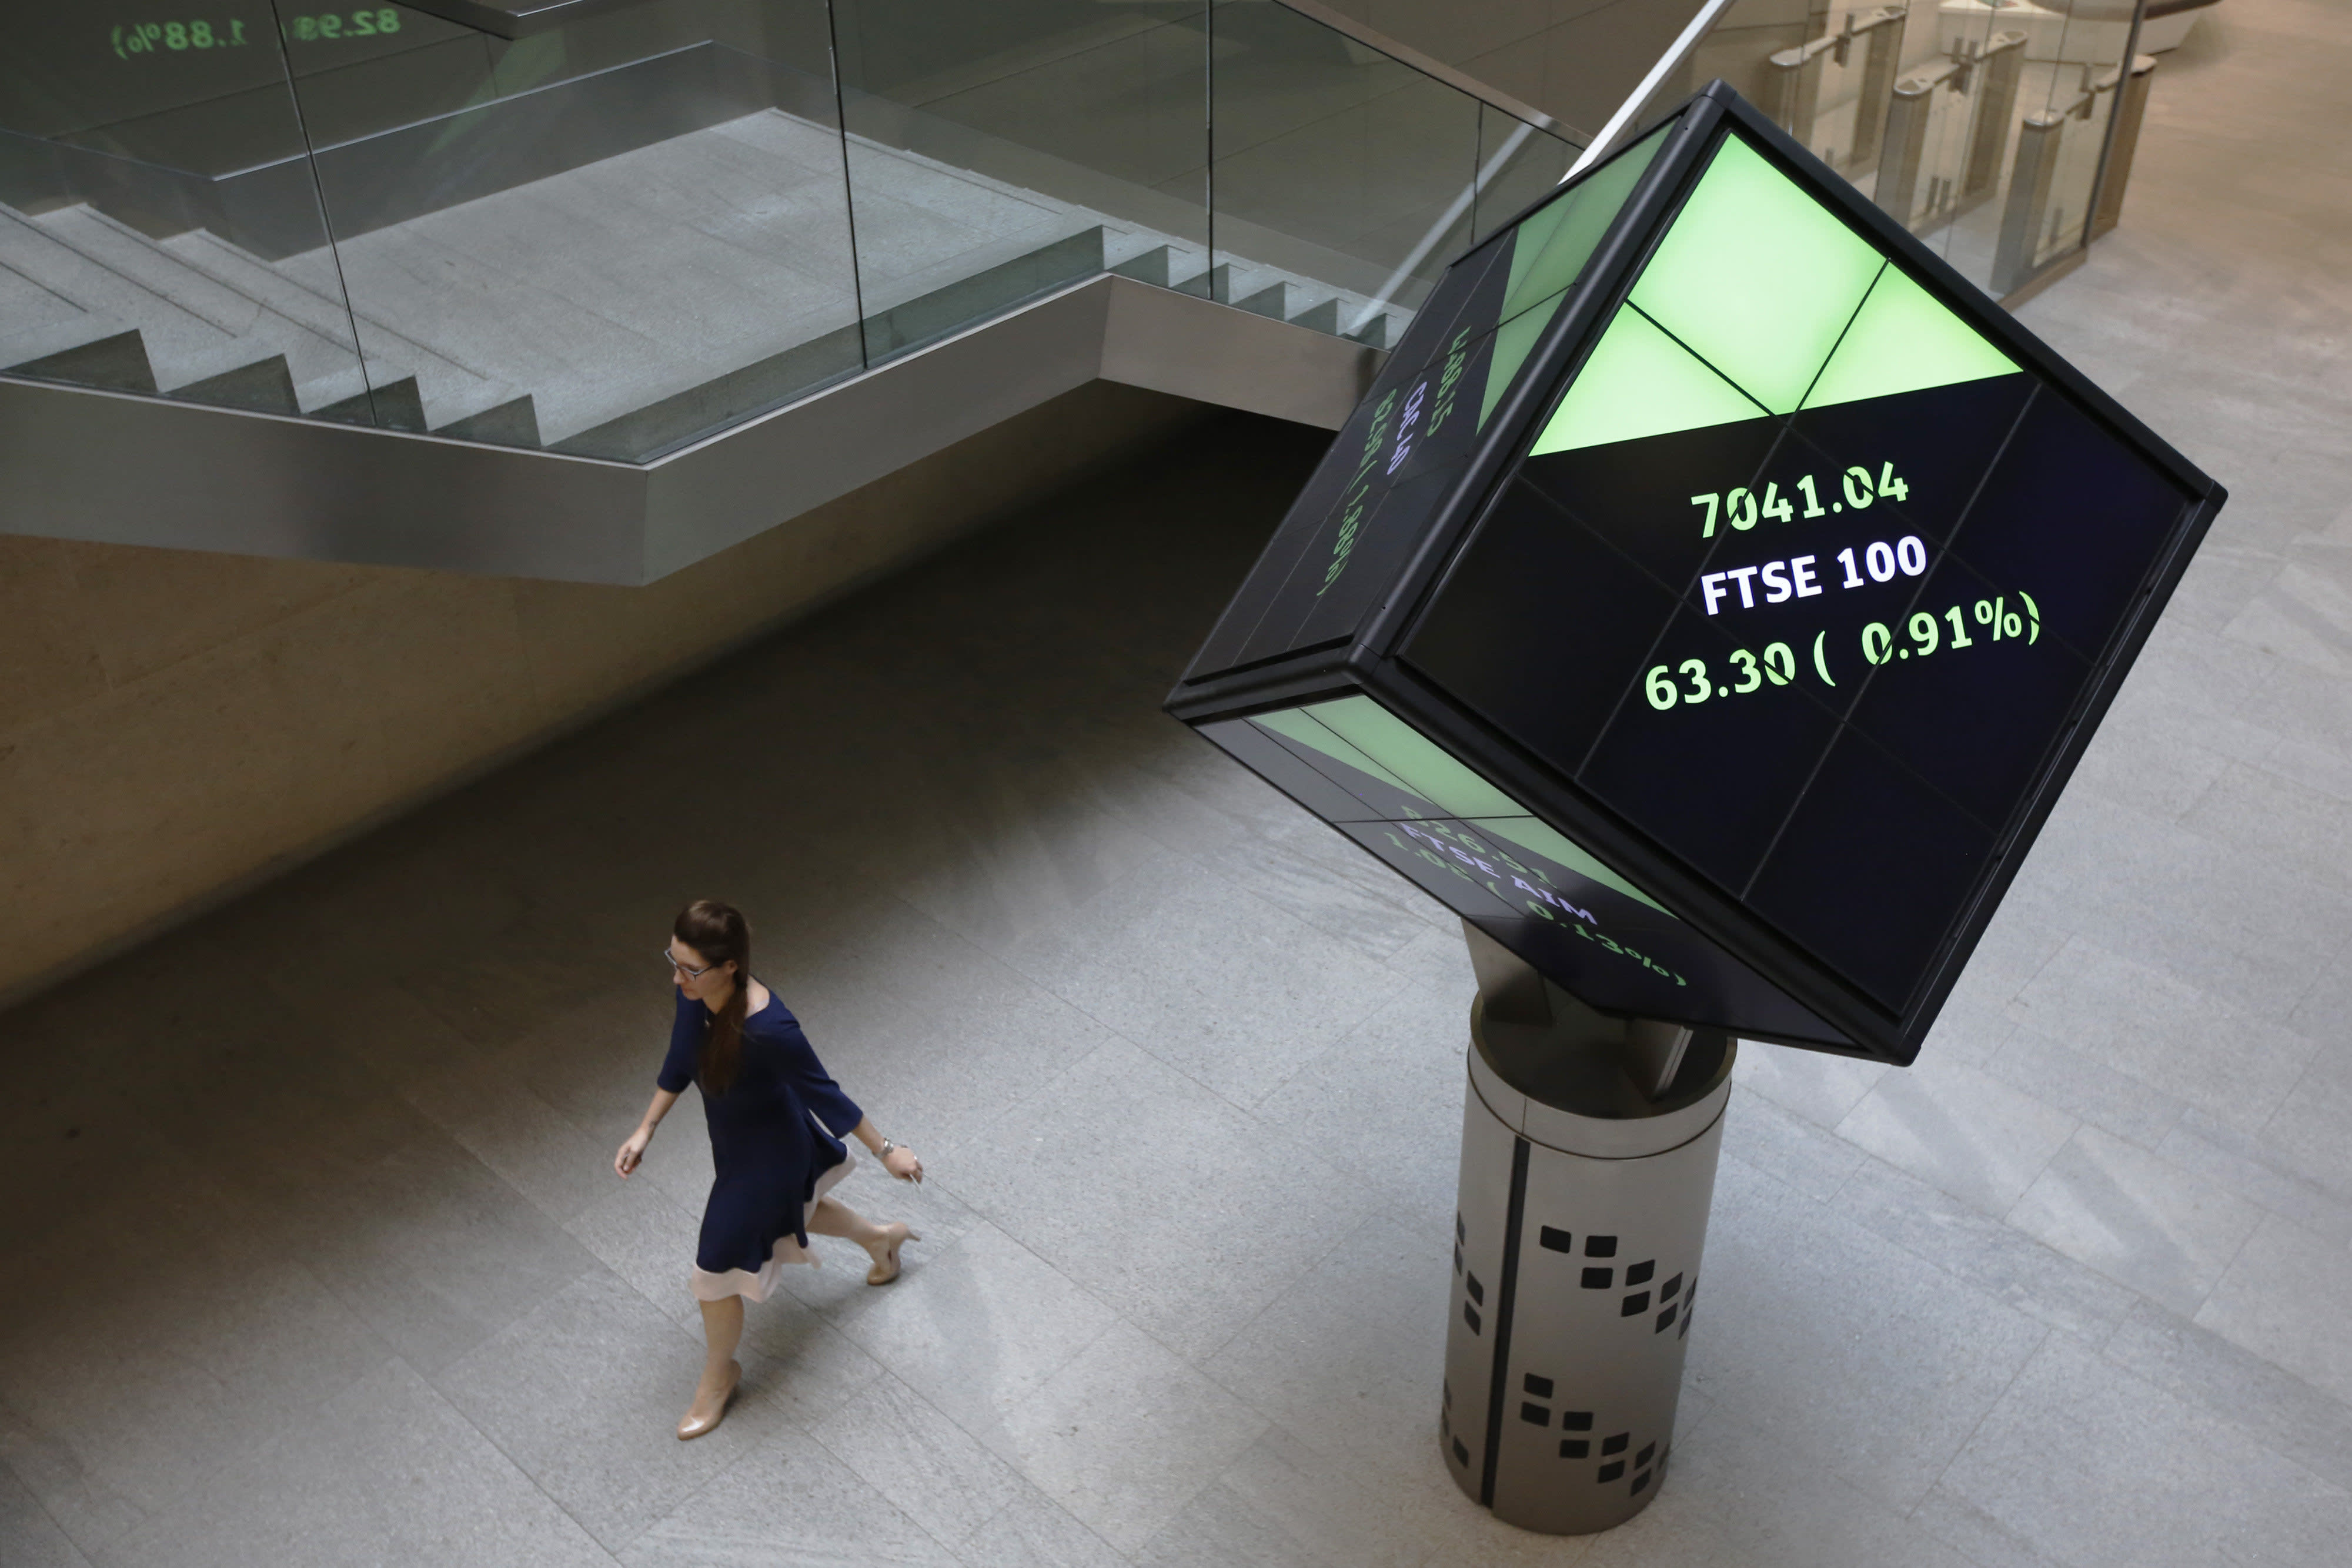 FTSE opens up 5% after historic rate cut